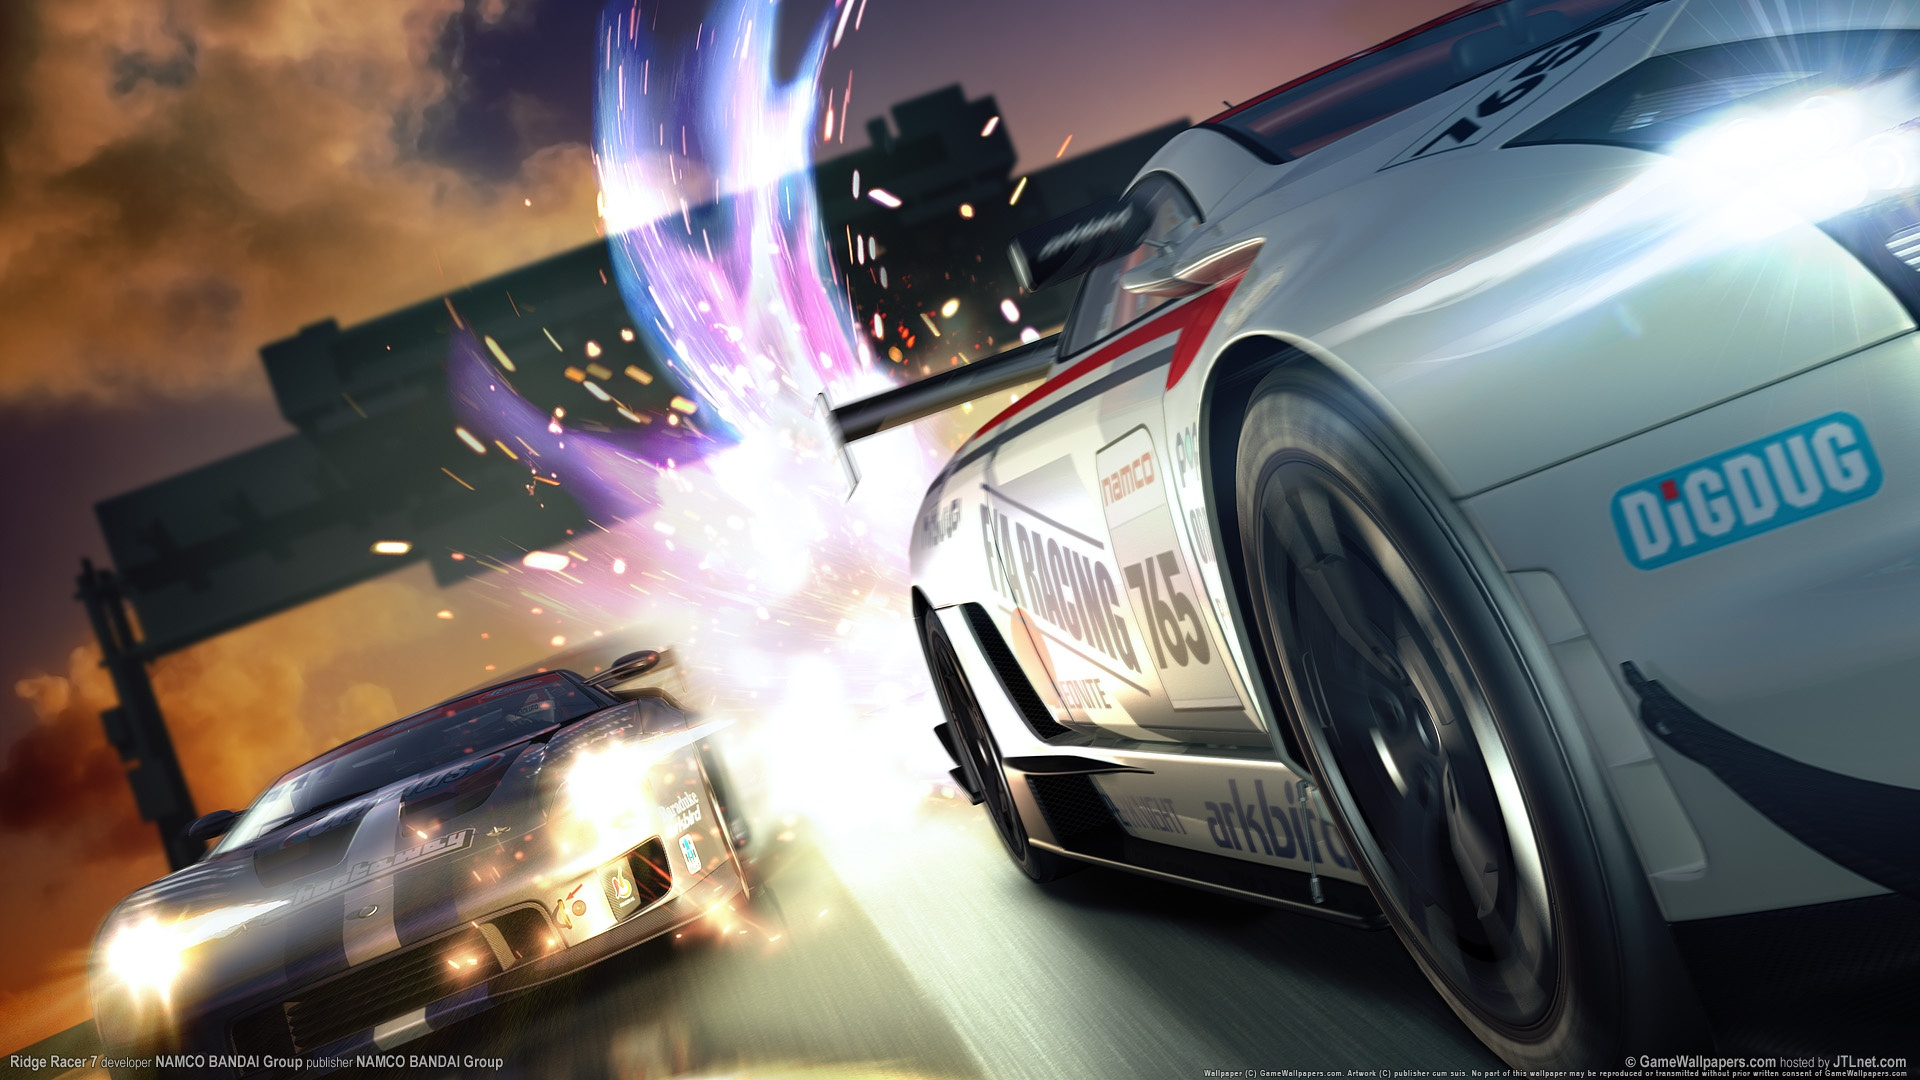 ridge racer latest game wallpapers in jpg format for free download